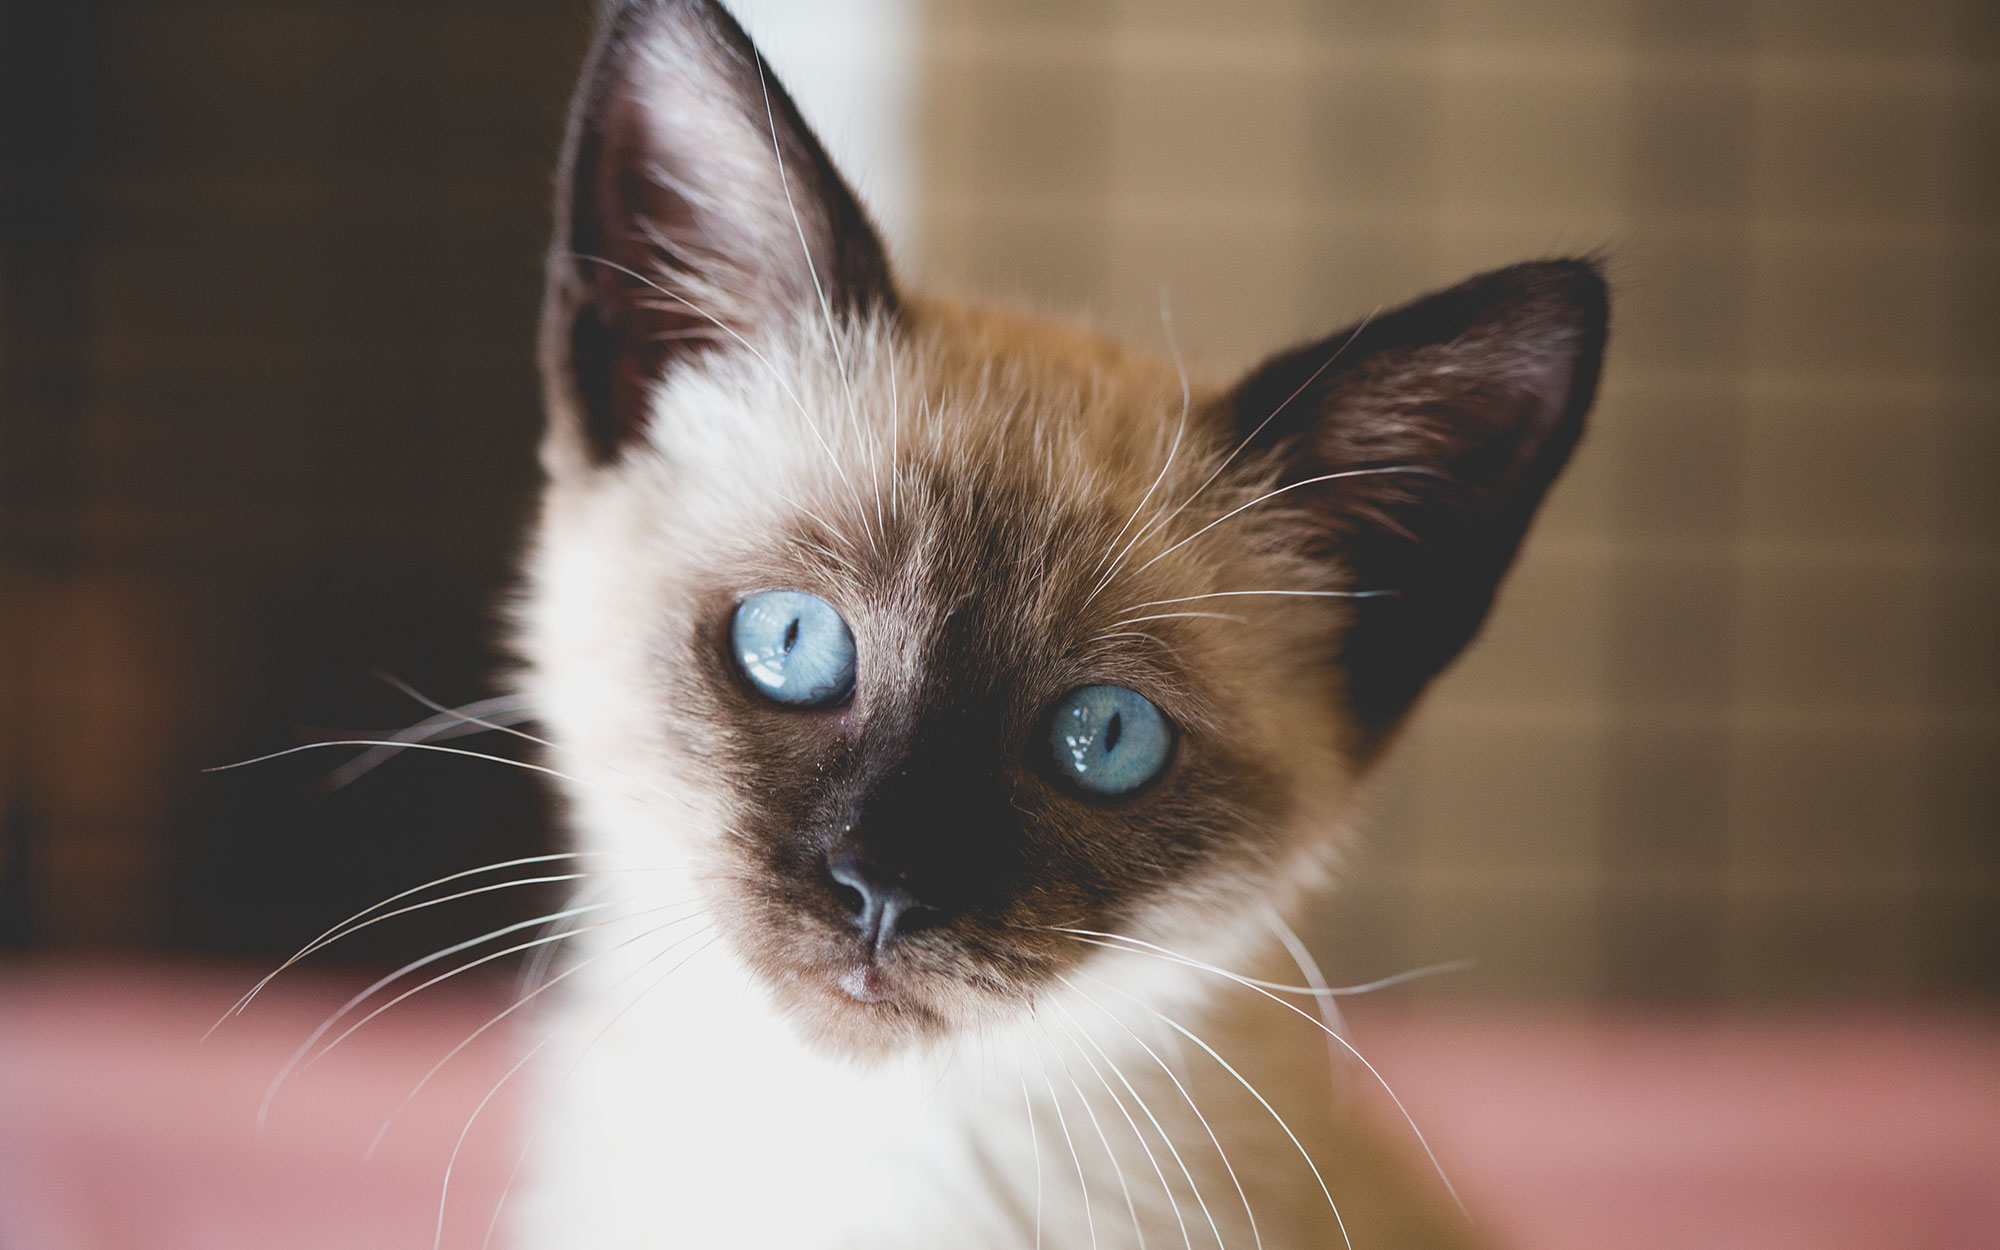 A Siamese kitten with bright blue eyes